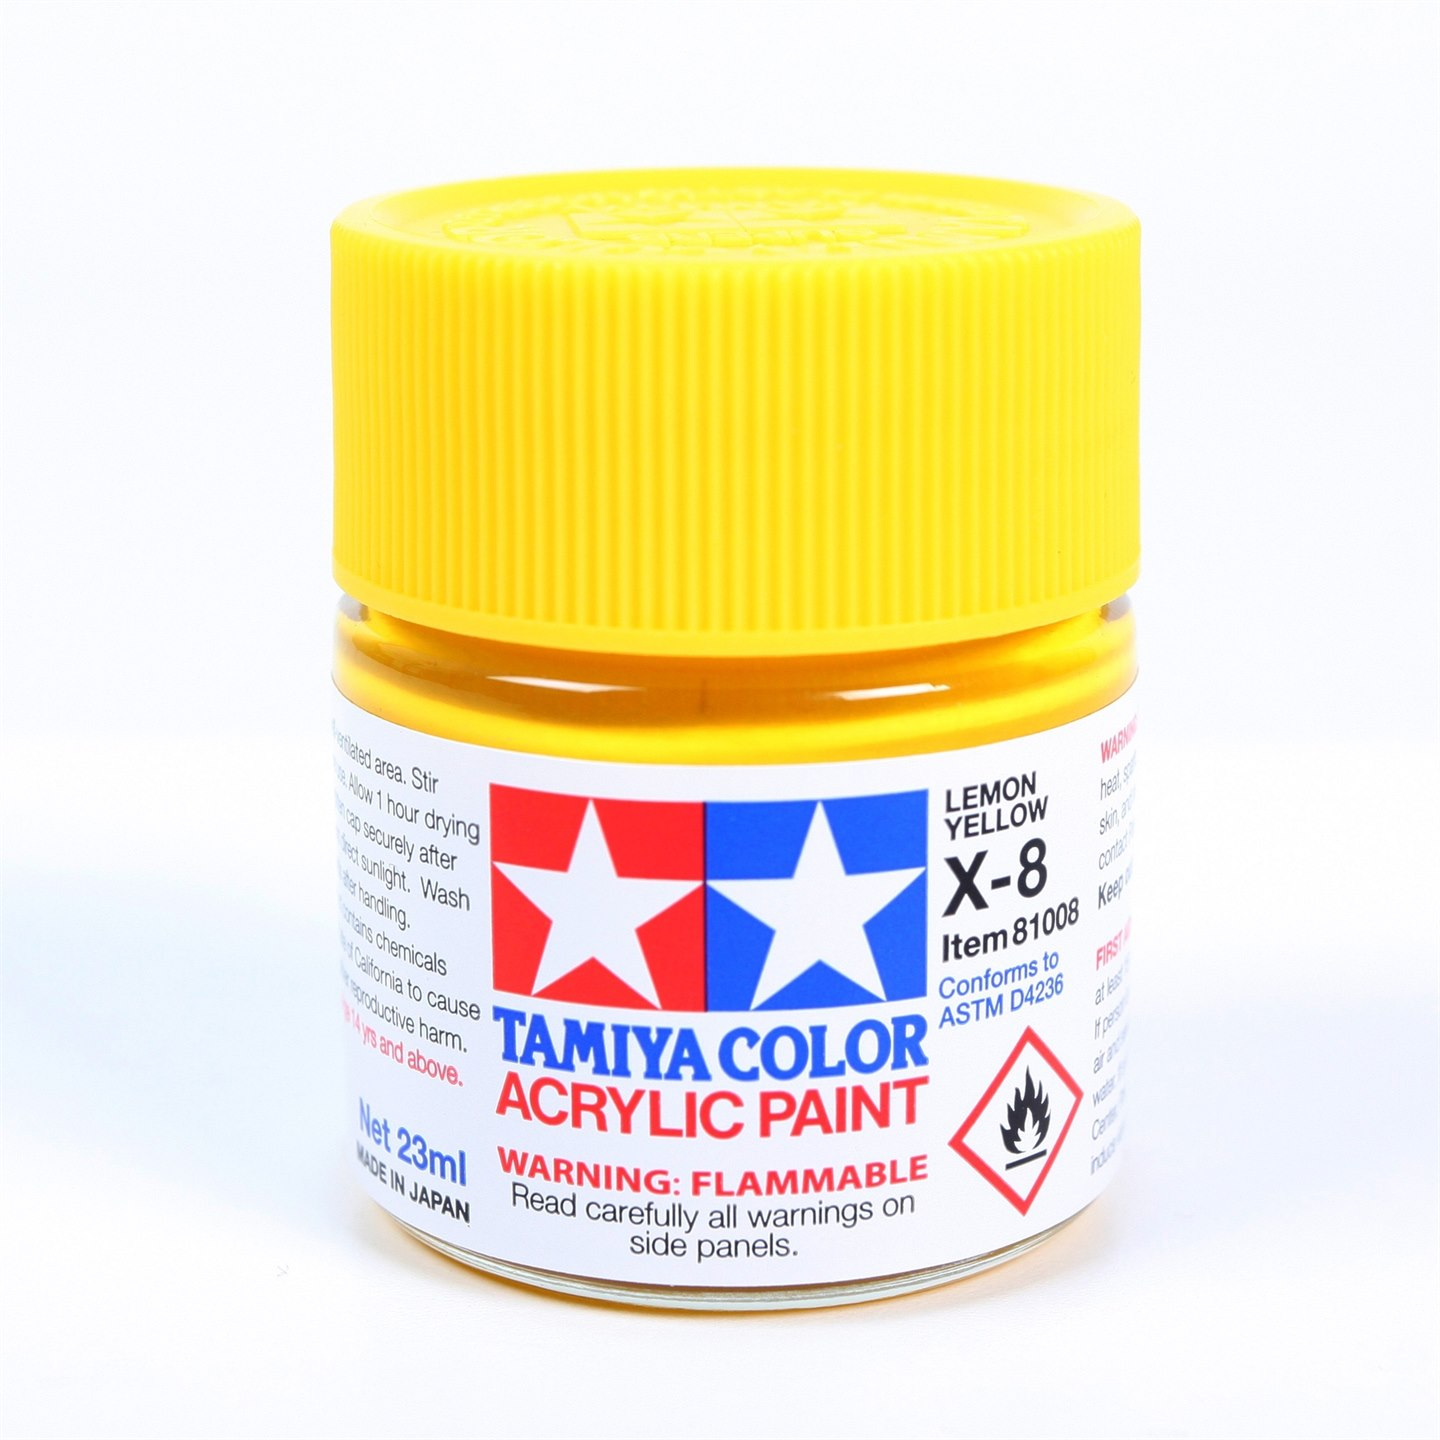 Tamiya Color Acrylic Paint X-08 (Lemon Yellow) (23ml)